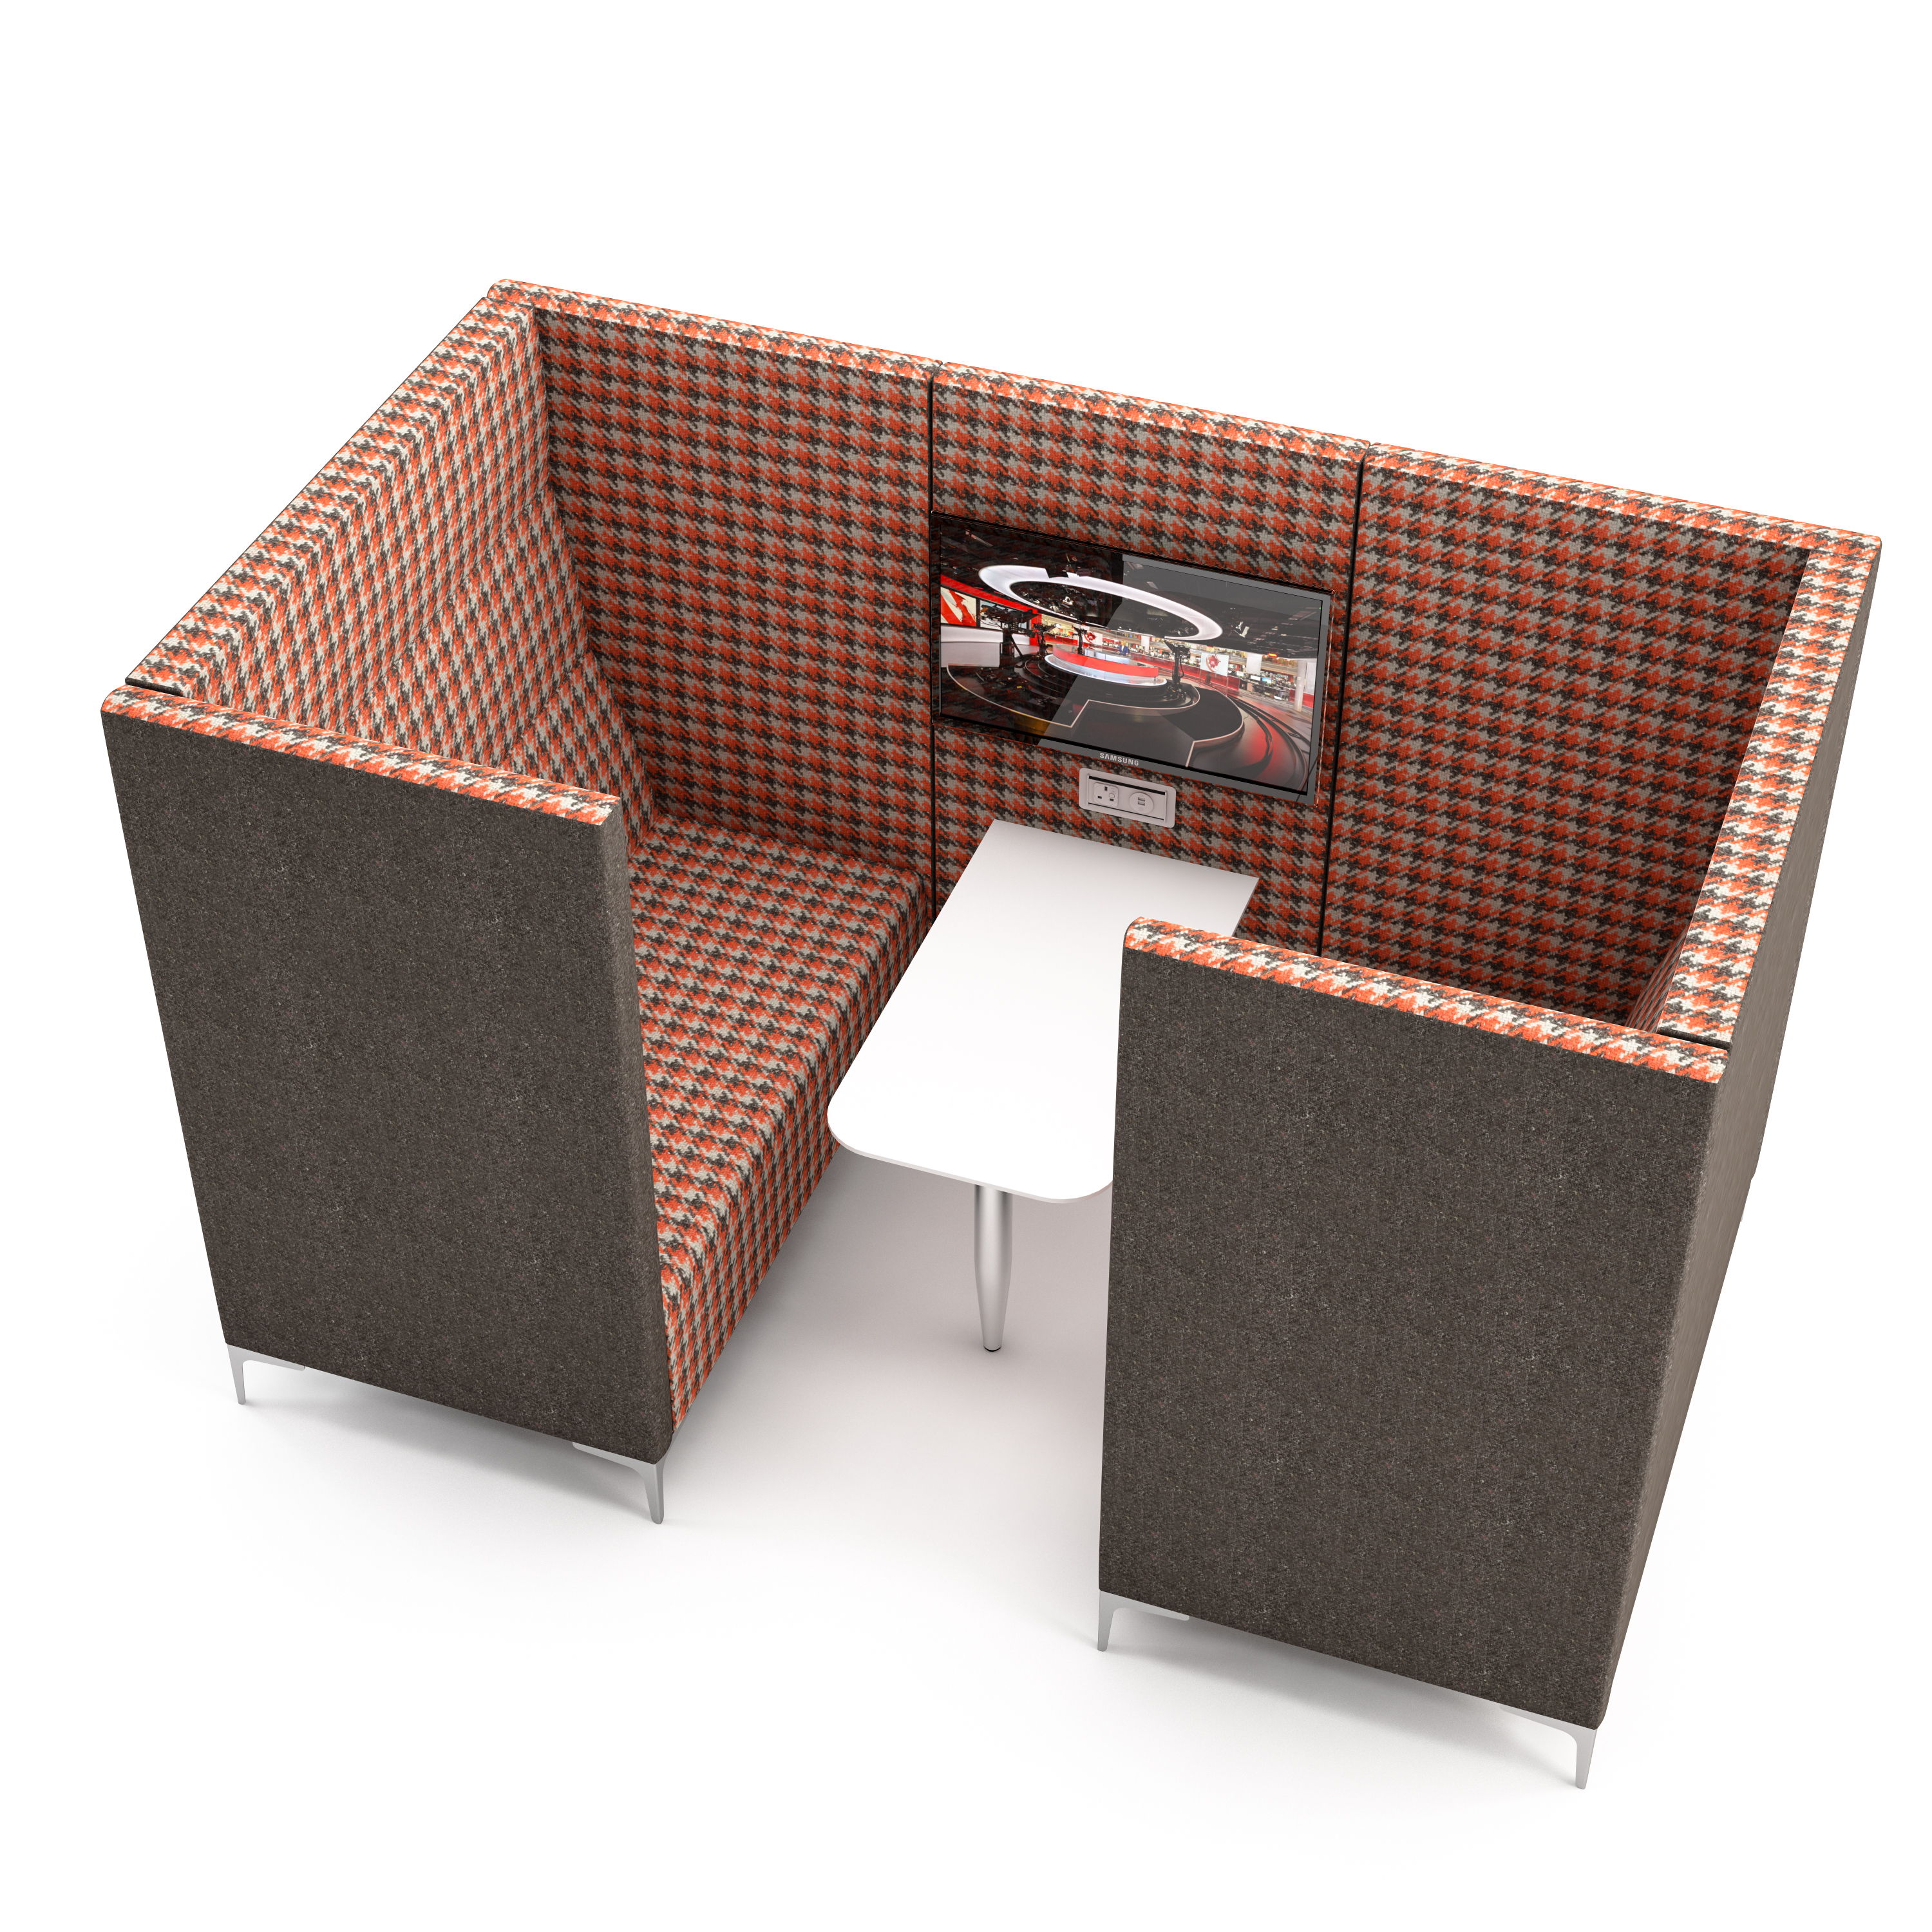 huddle cave furniture pods. Black Bedroom Furniture Sets. Home Design Ideas